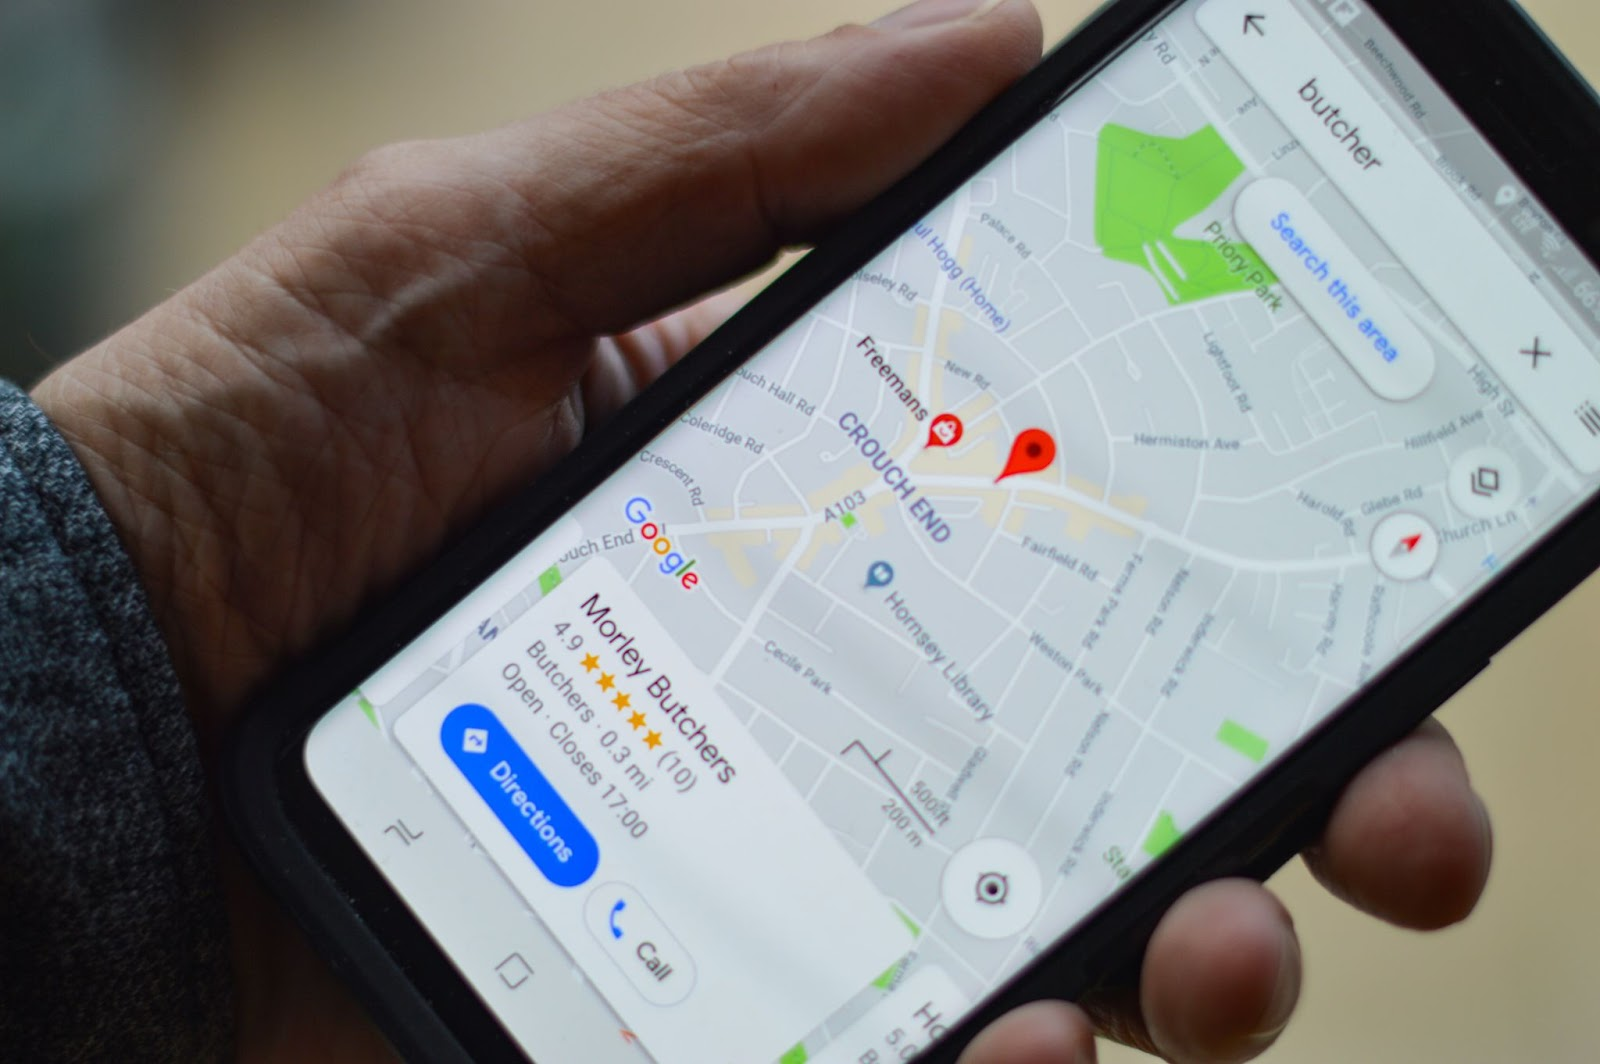 Google Maps location-based services